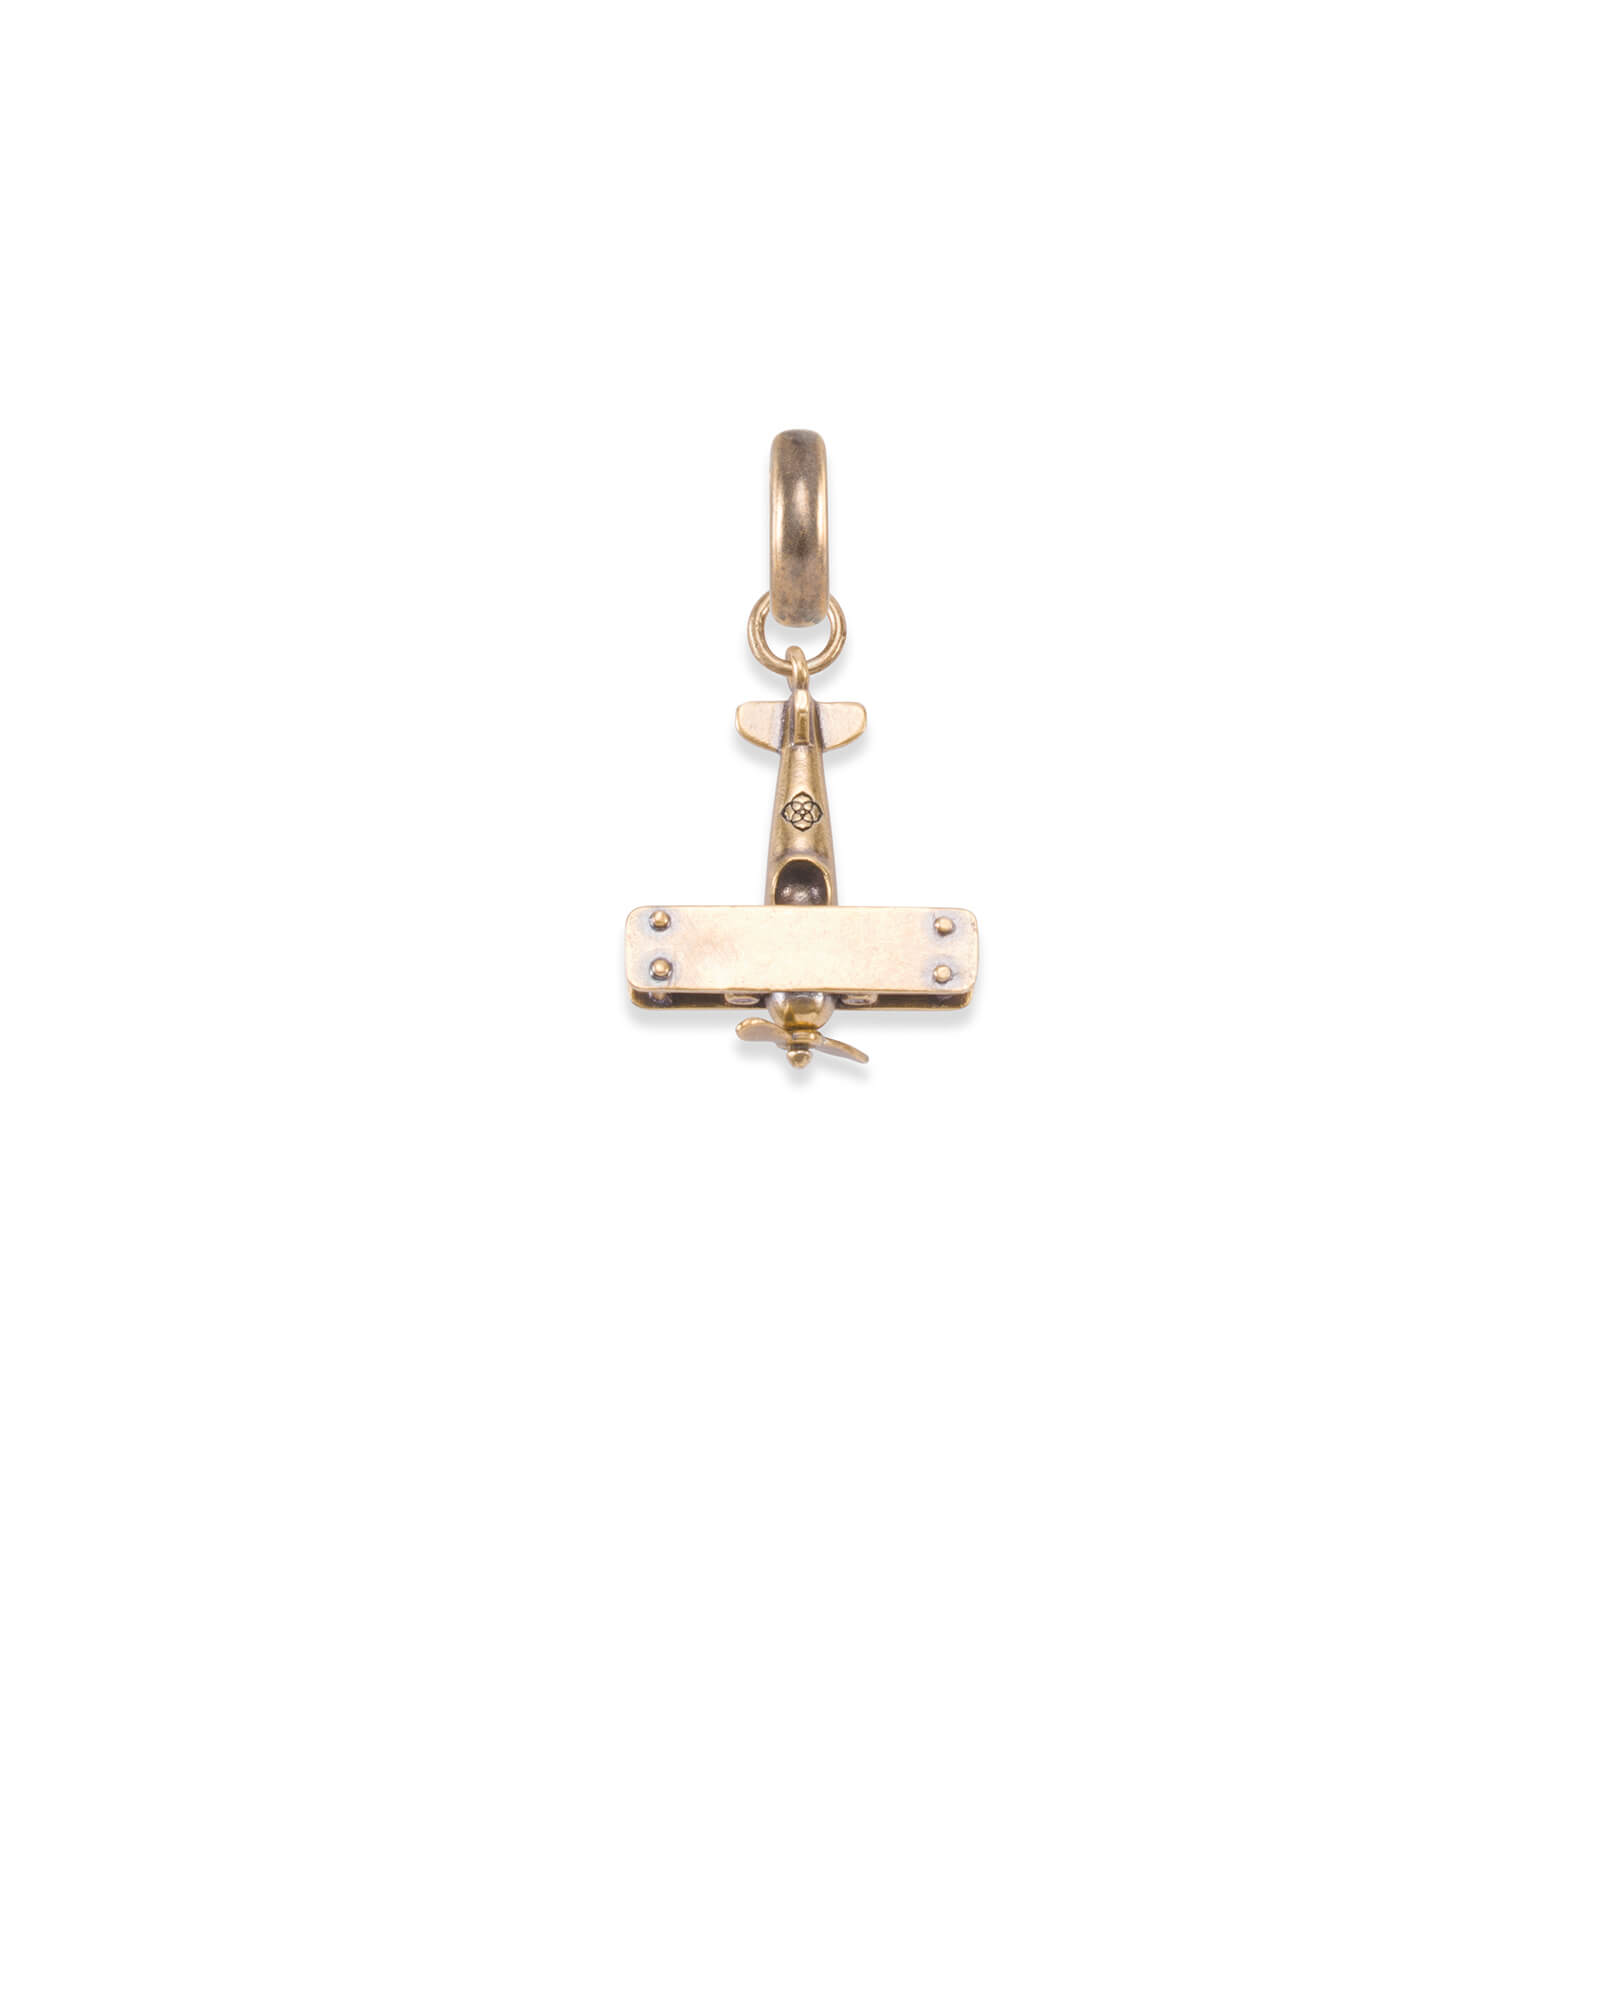 North Carolina Airplane Charm in Vintage Gold